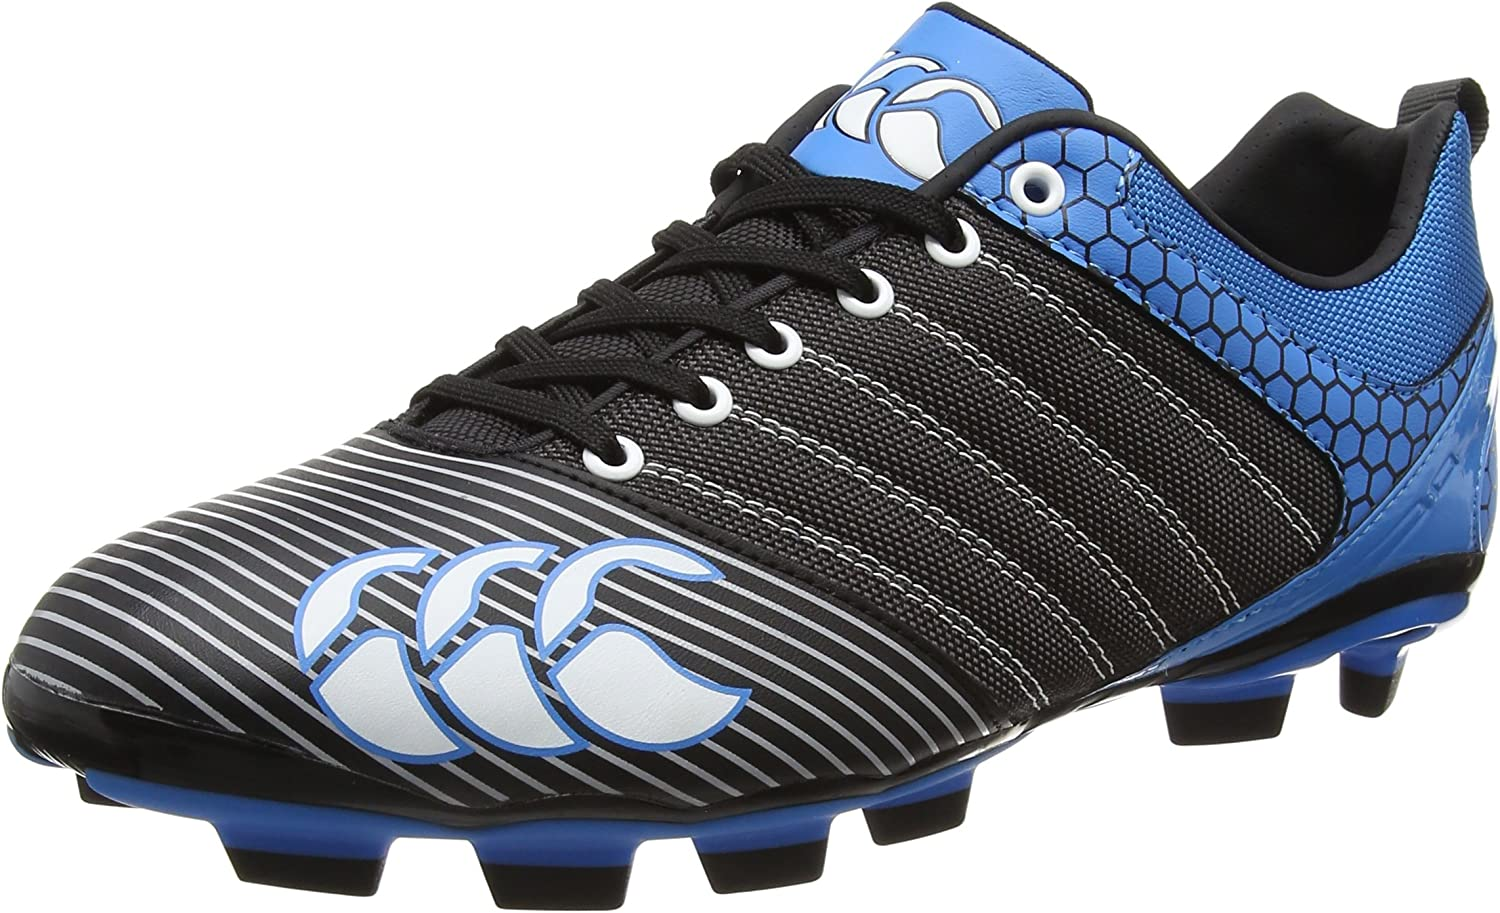 Touch Blade Rugby Boots, Black Black